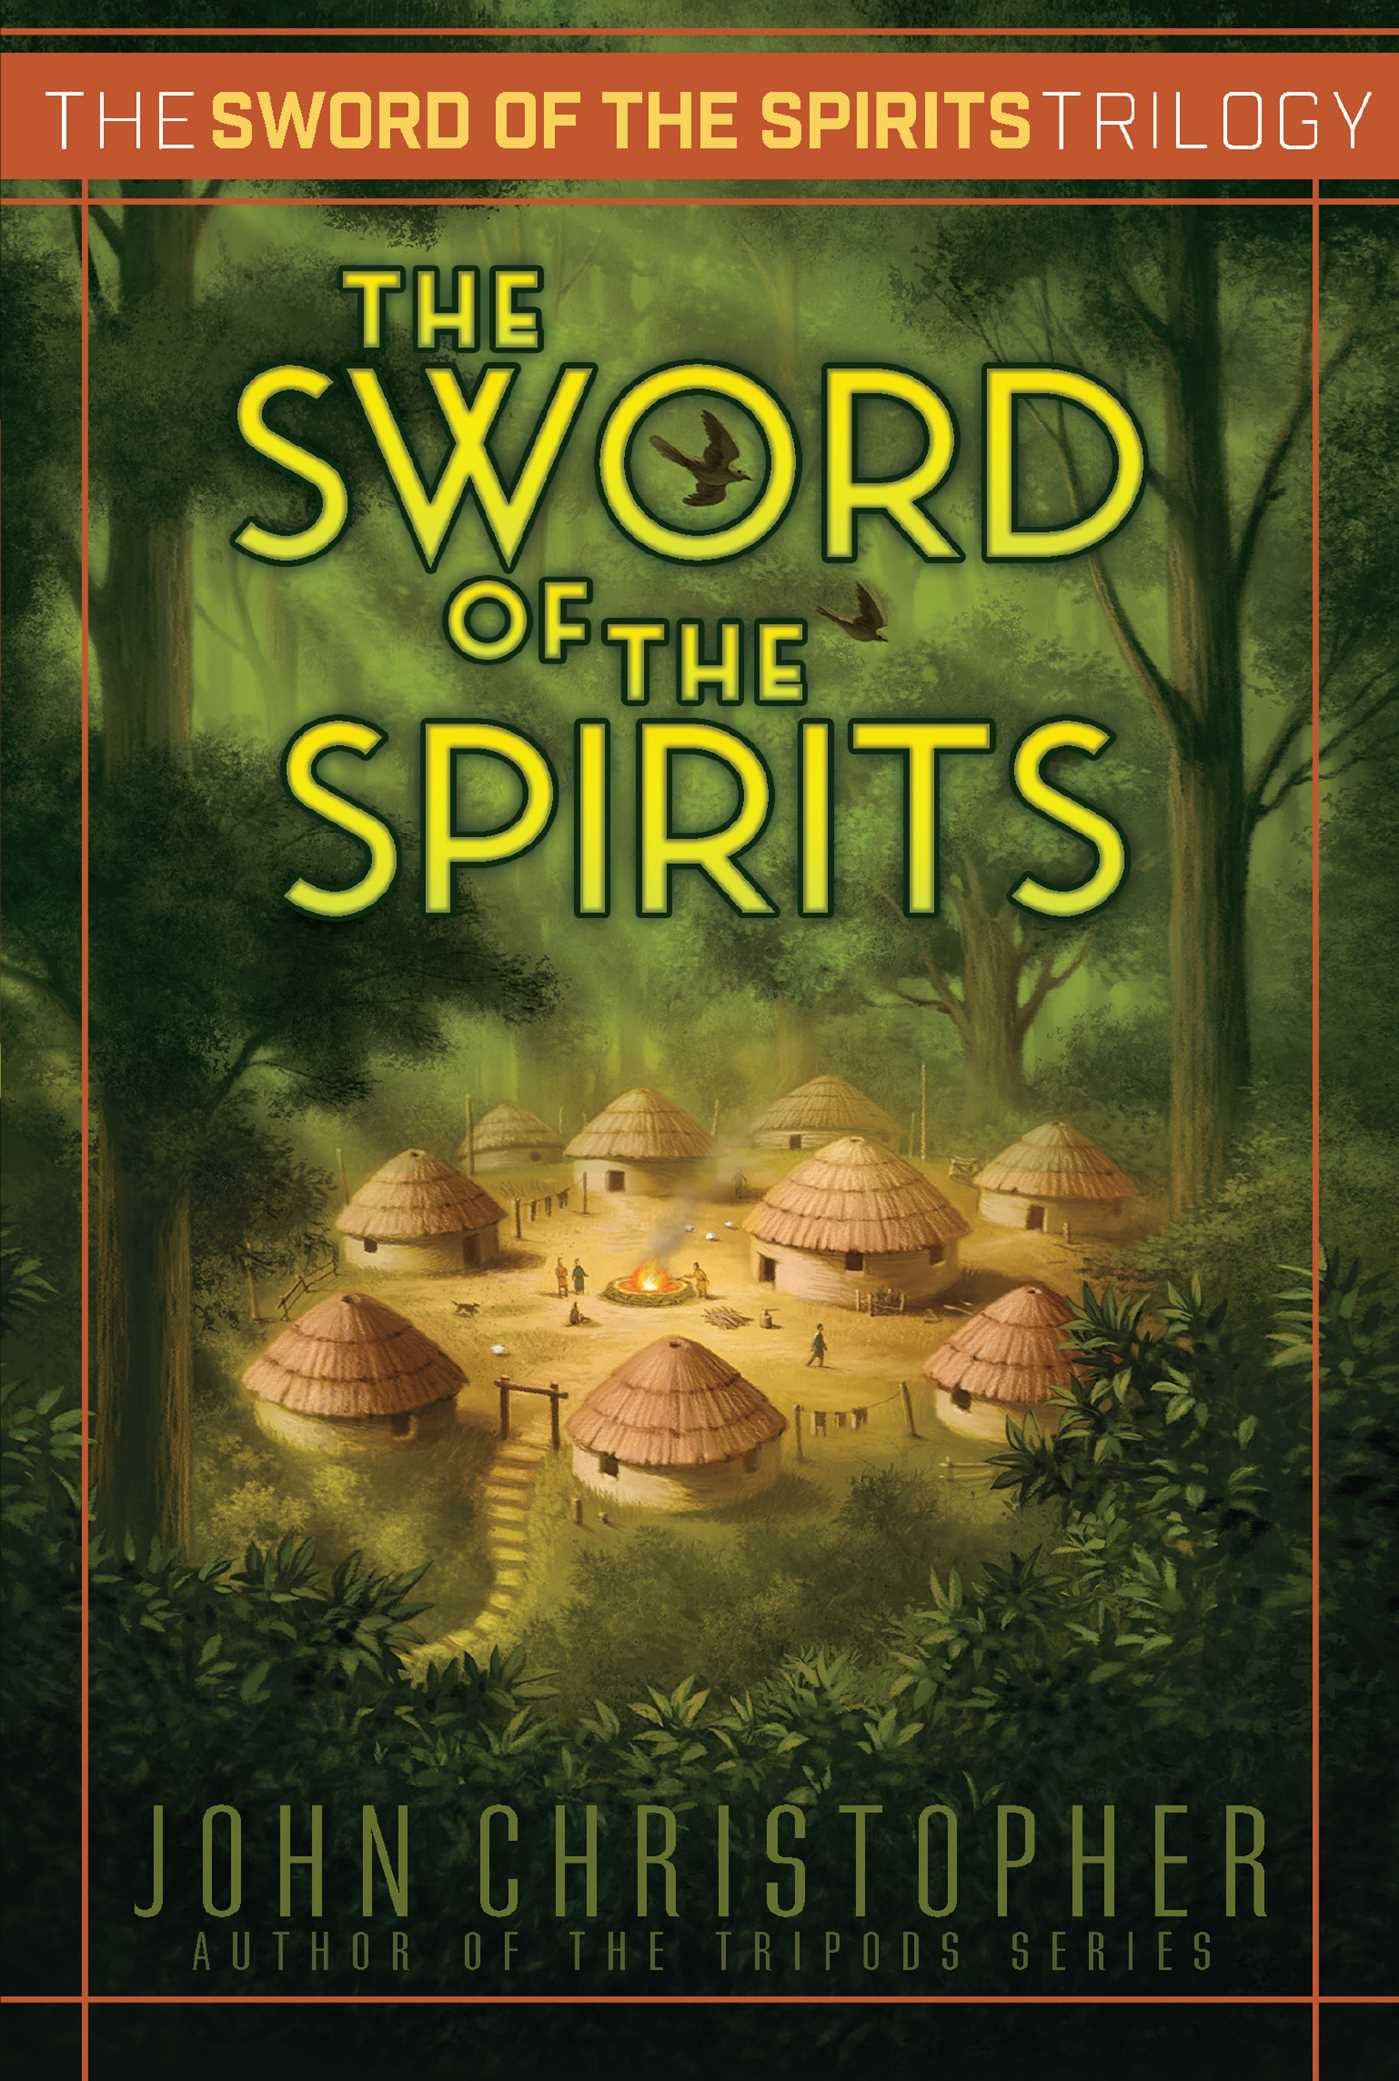 Sword-of-the-spirits-9781481419970_hr